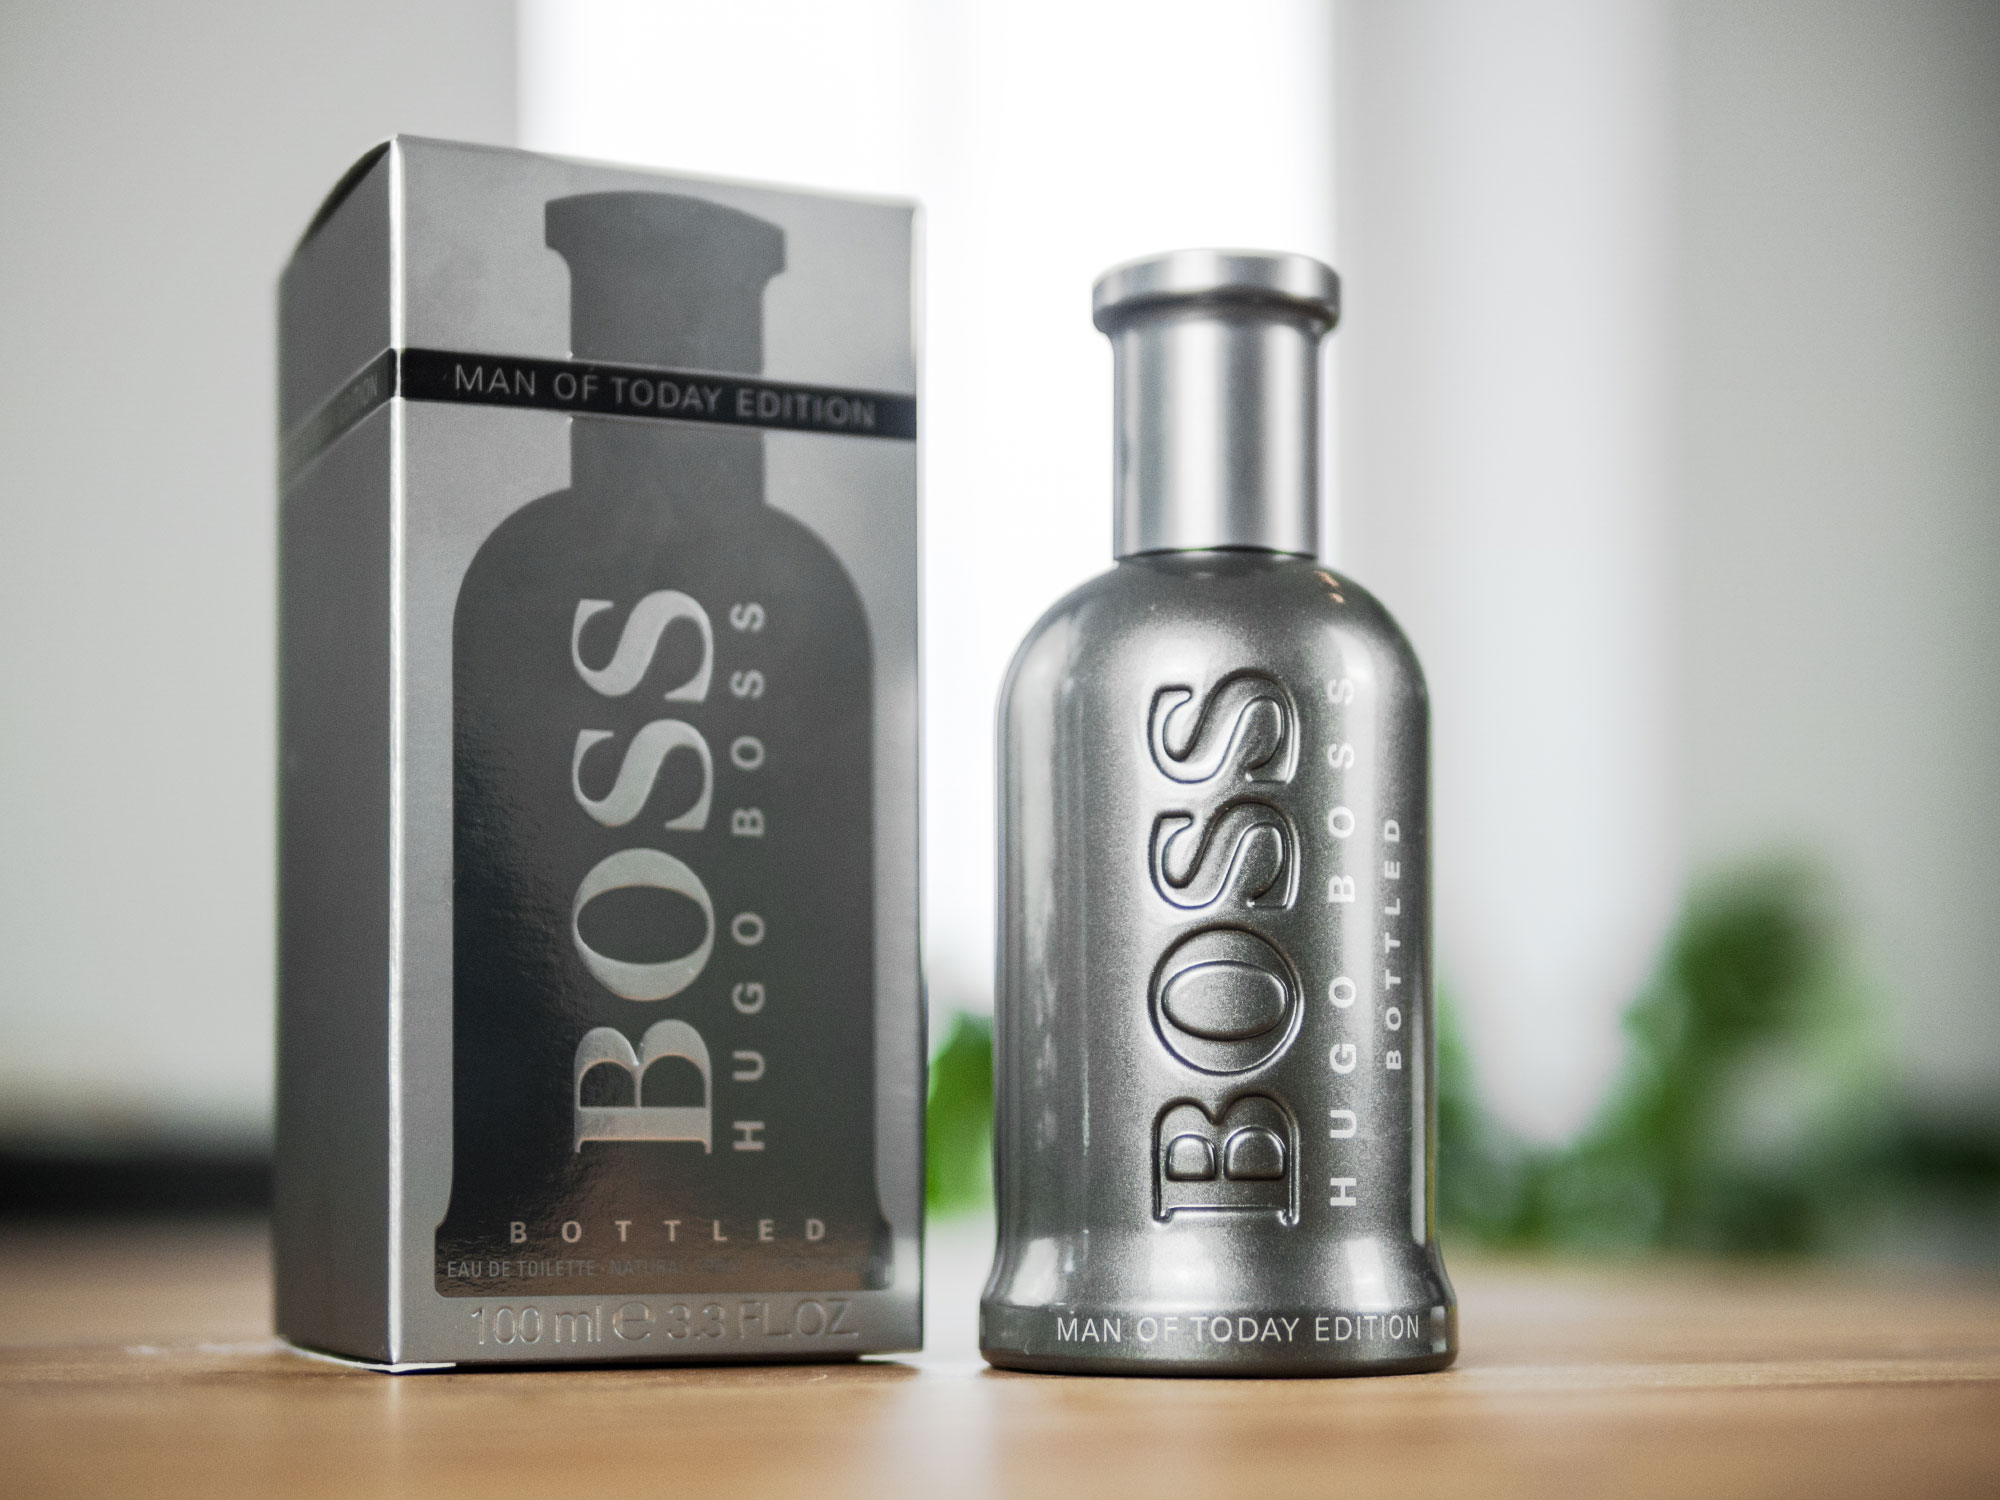 hugo boss man of today edition